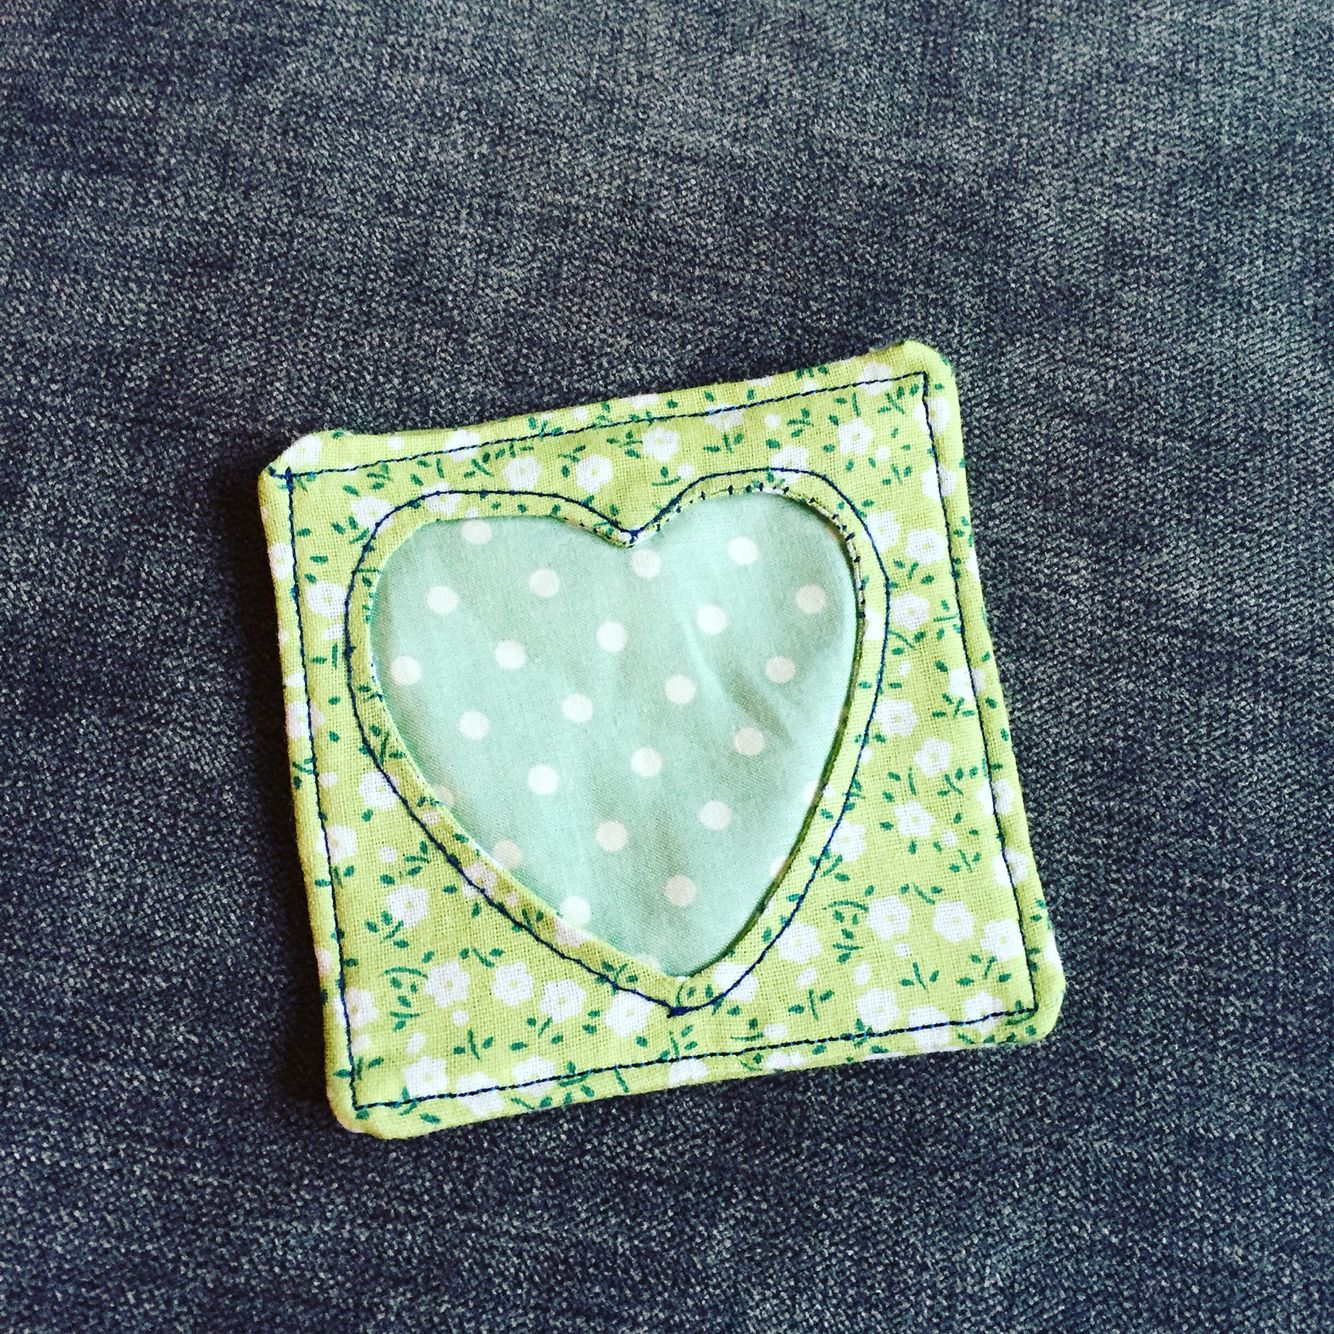 Cute little coaster made of some scrap pieces of fabric I had spare :)